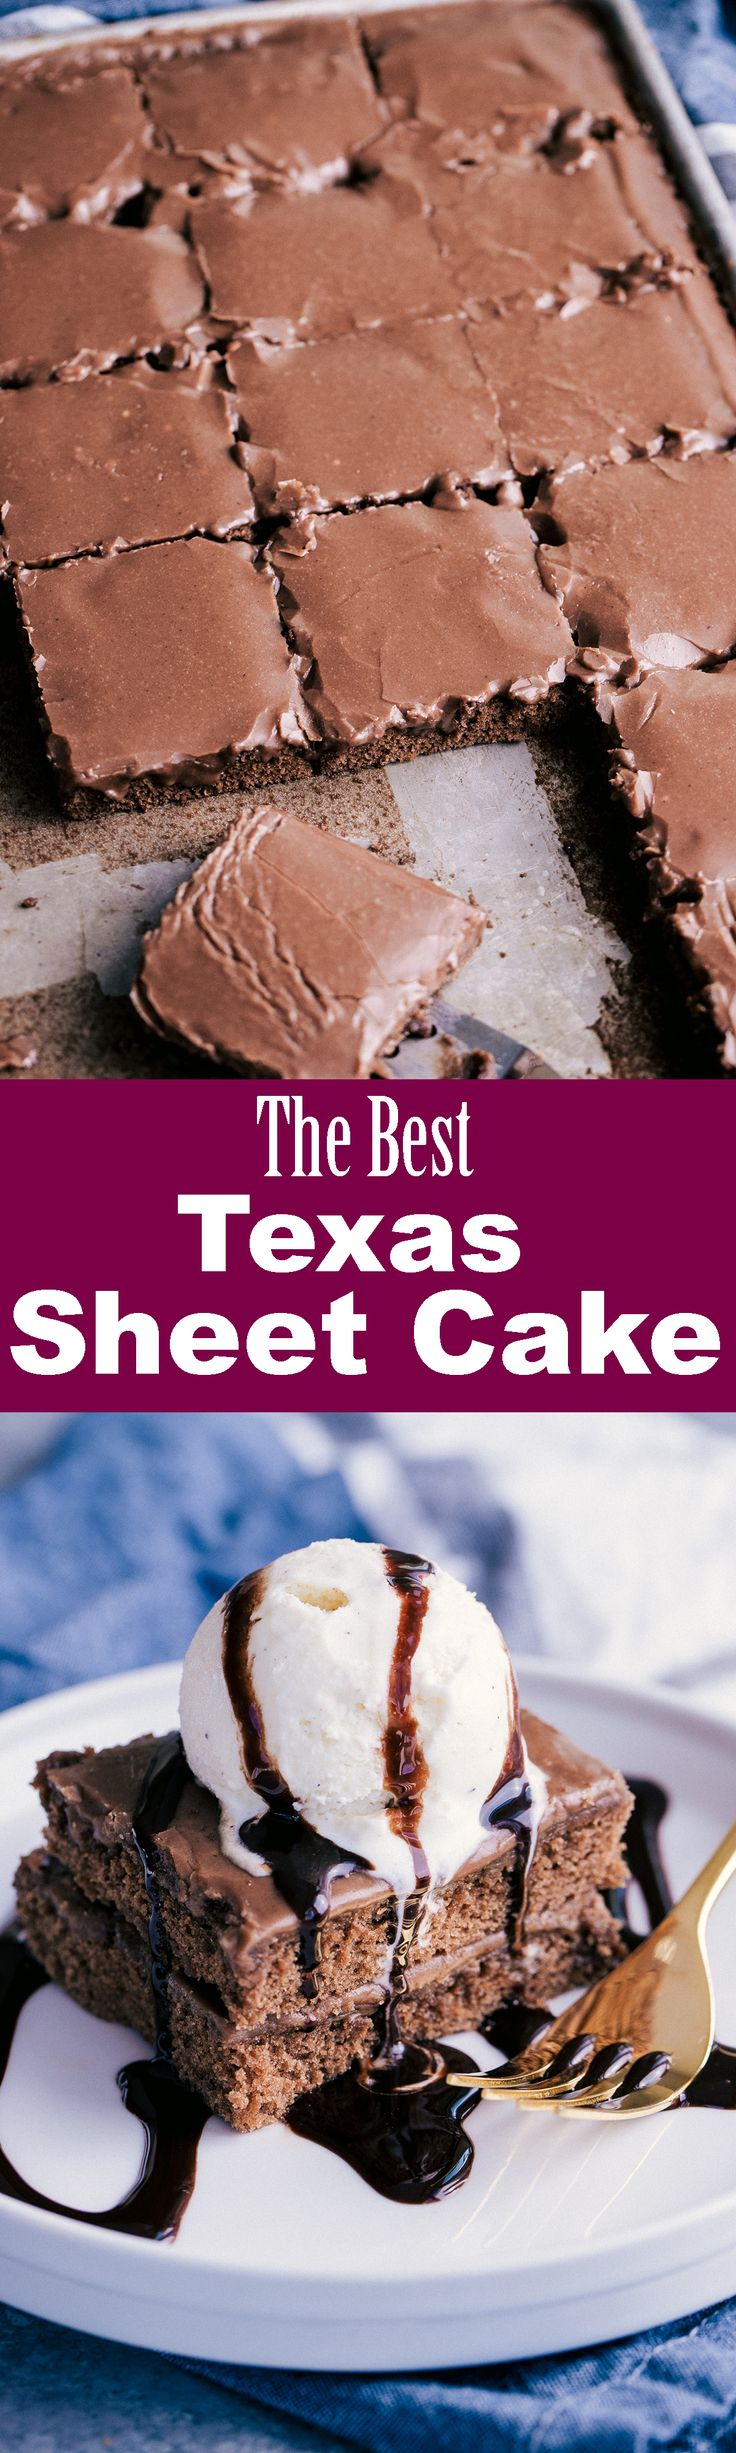 It's says the best but the only chocolate Texas sheer cake I likens my mom's: )